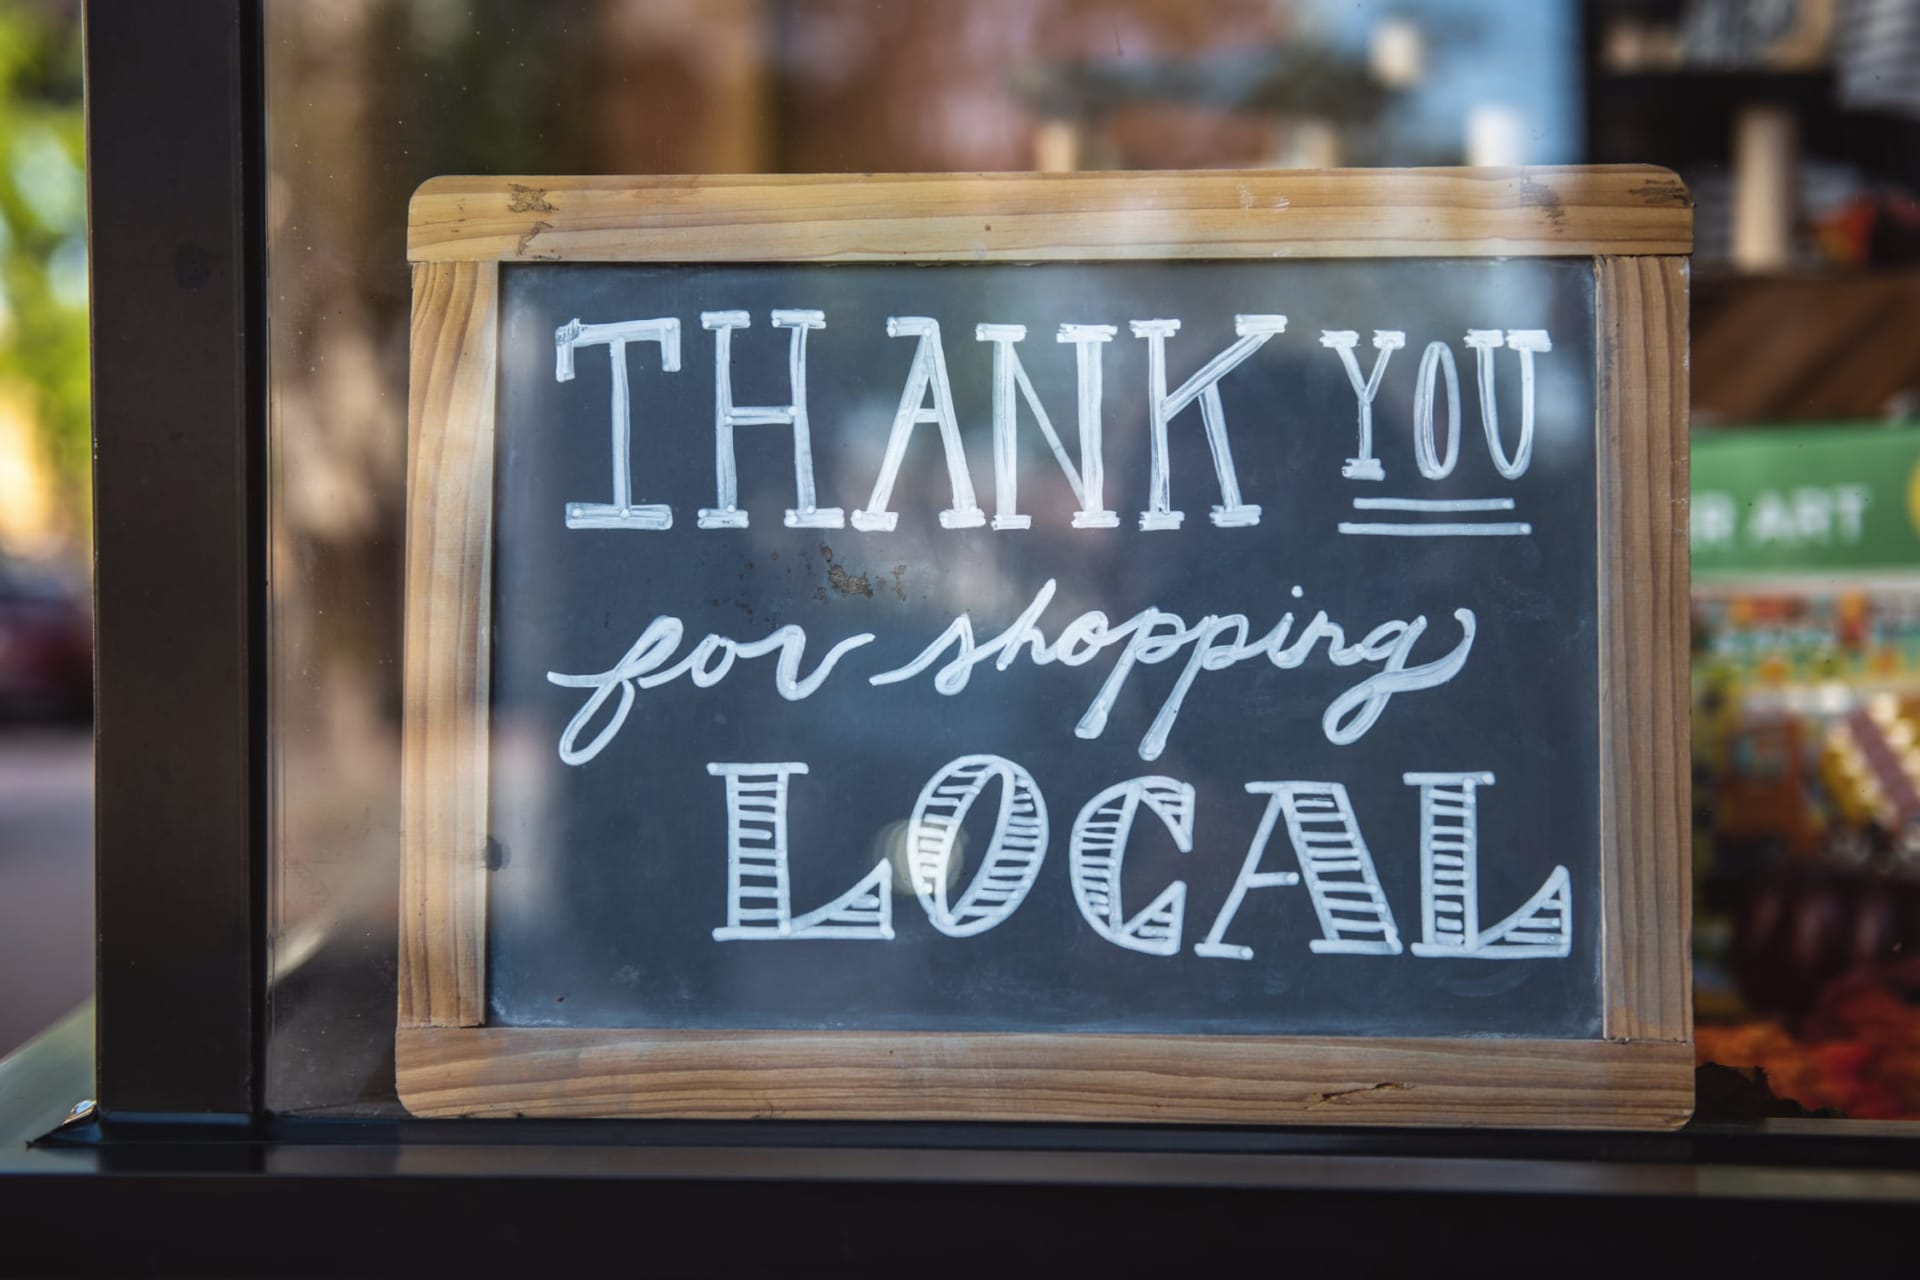 Thank-You-for-Shopping-Local-w1920.jpg